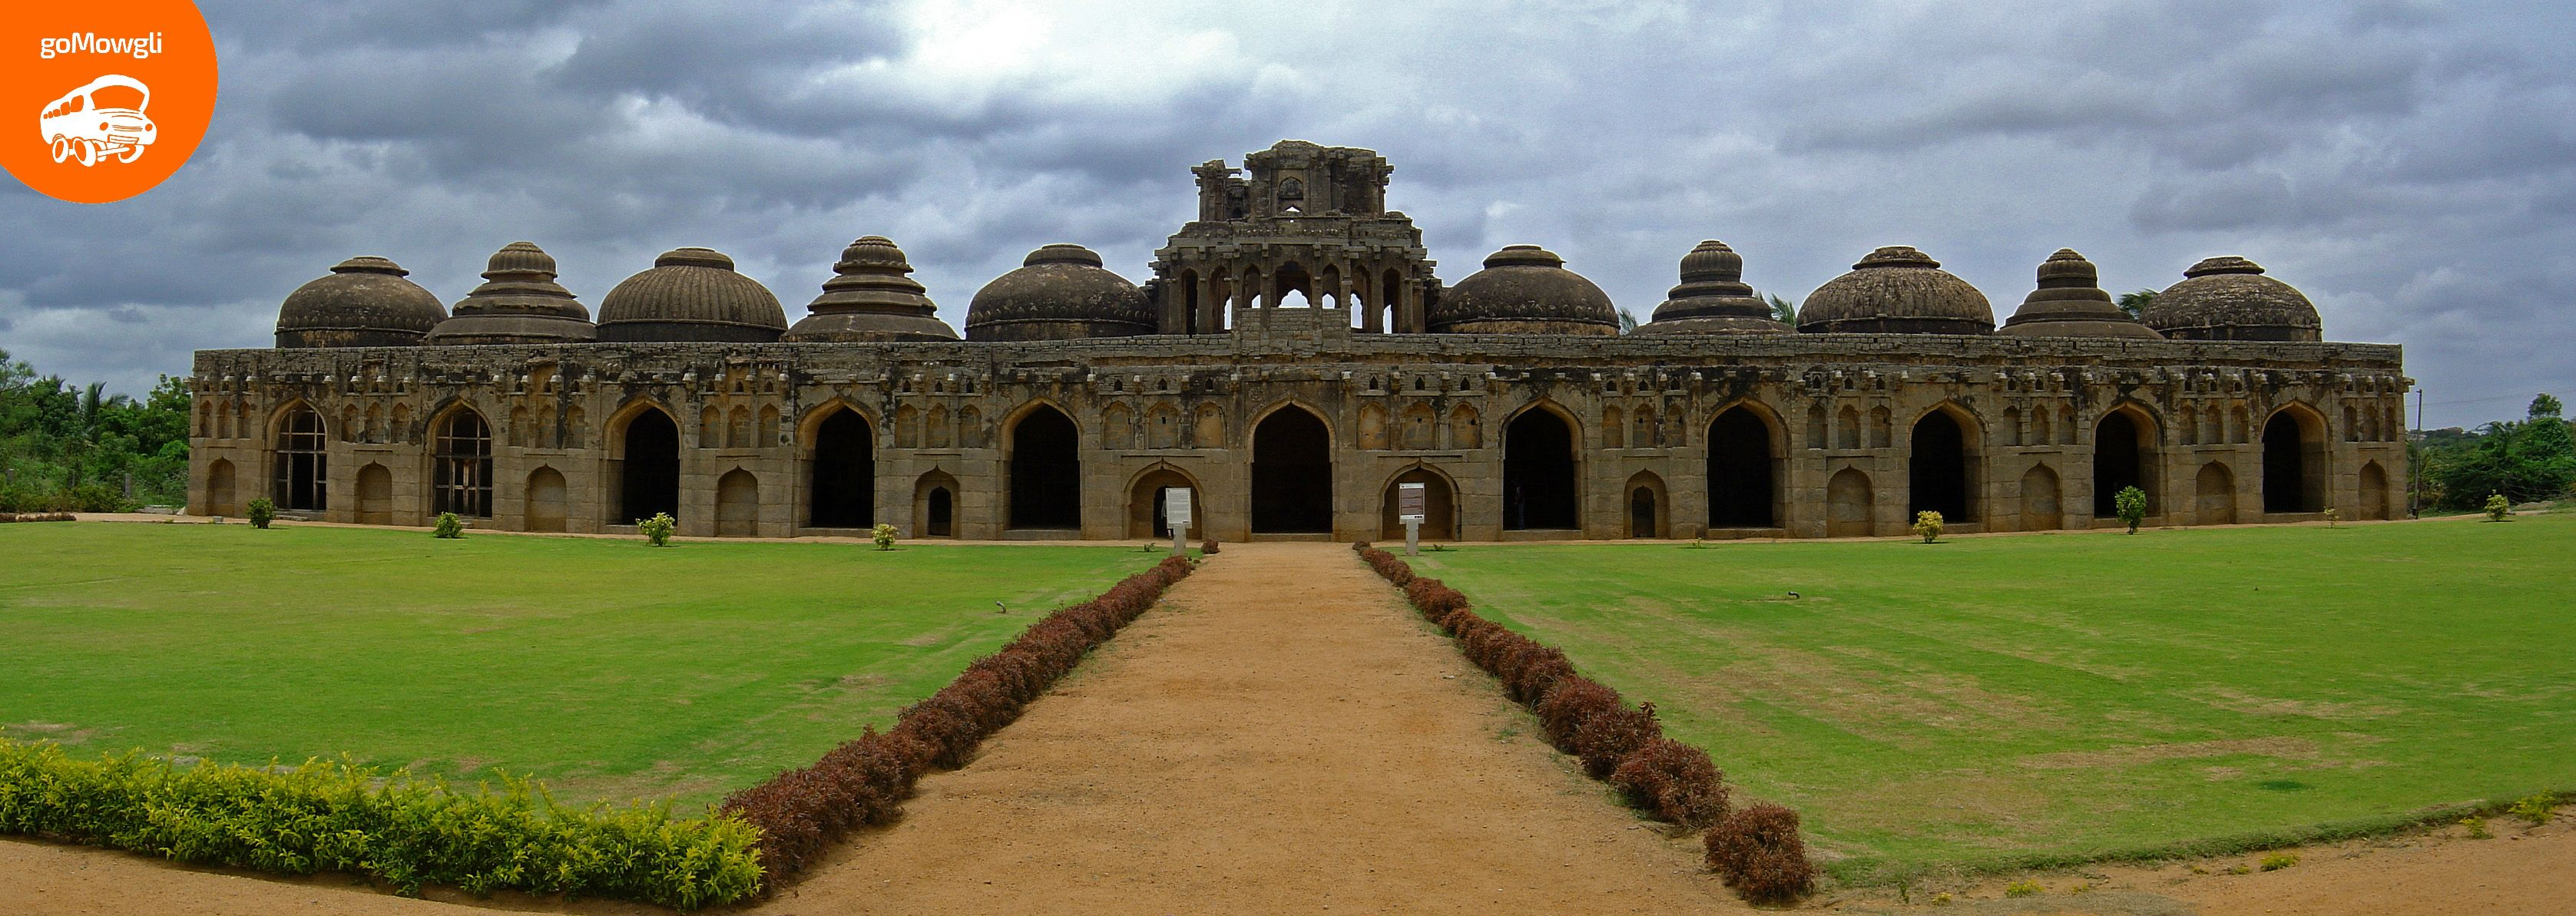 Hampi An ancient city World's largest open air museum